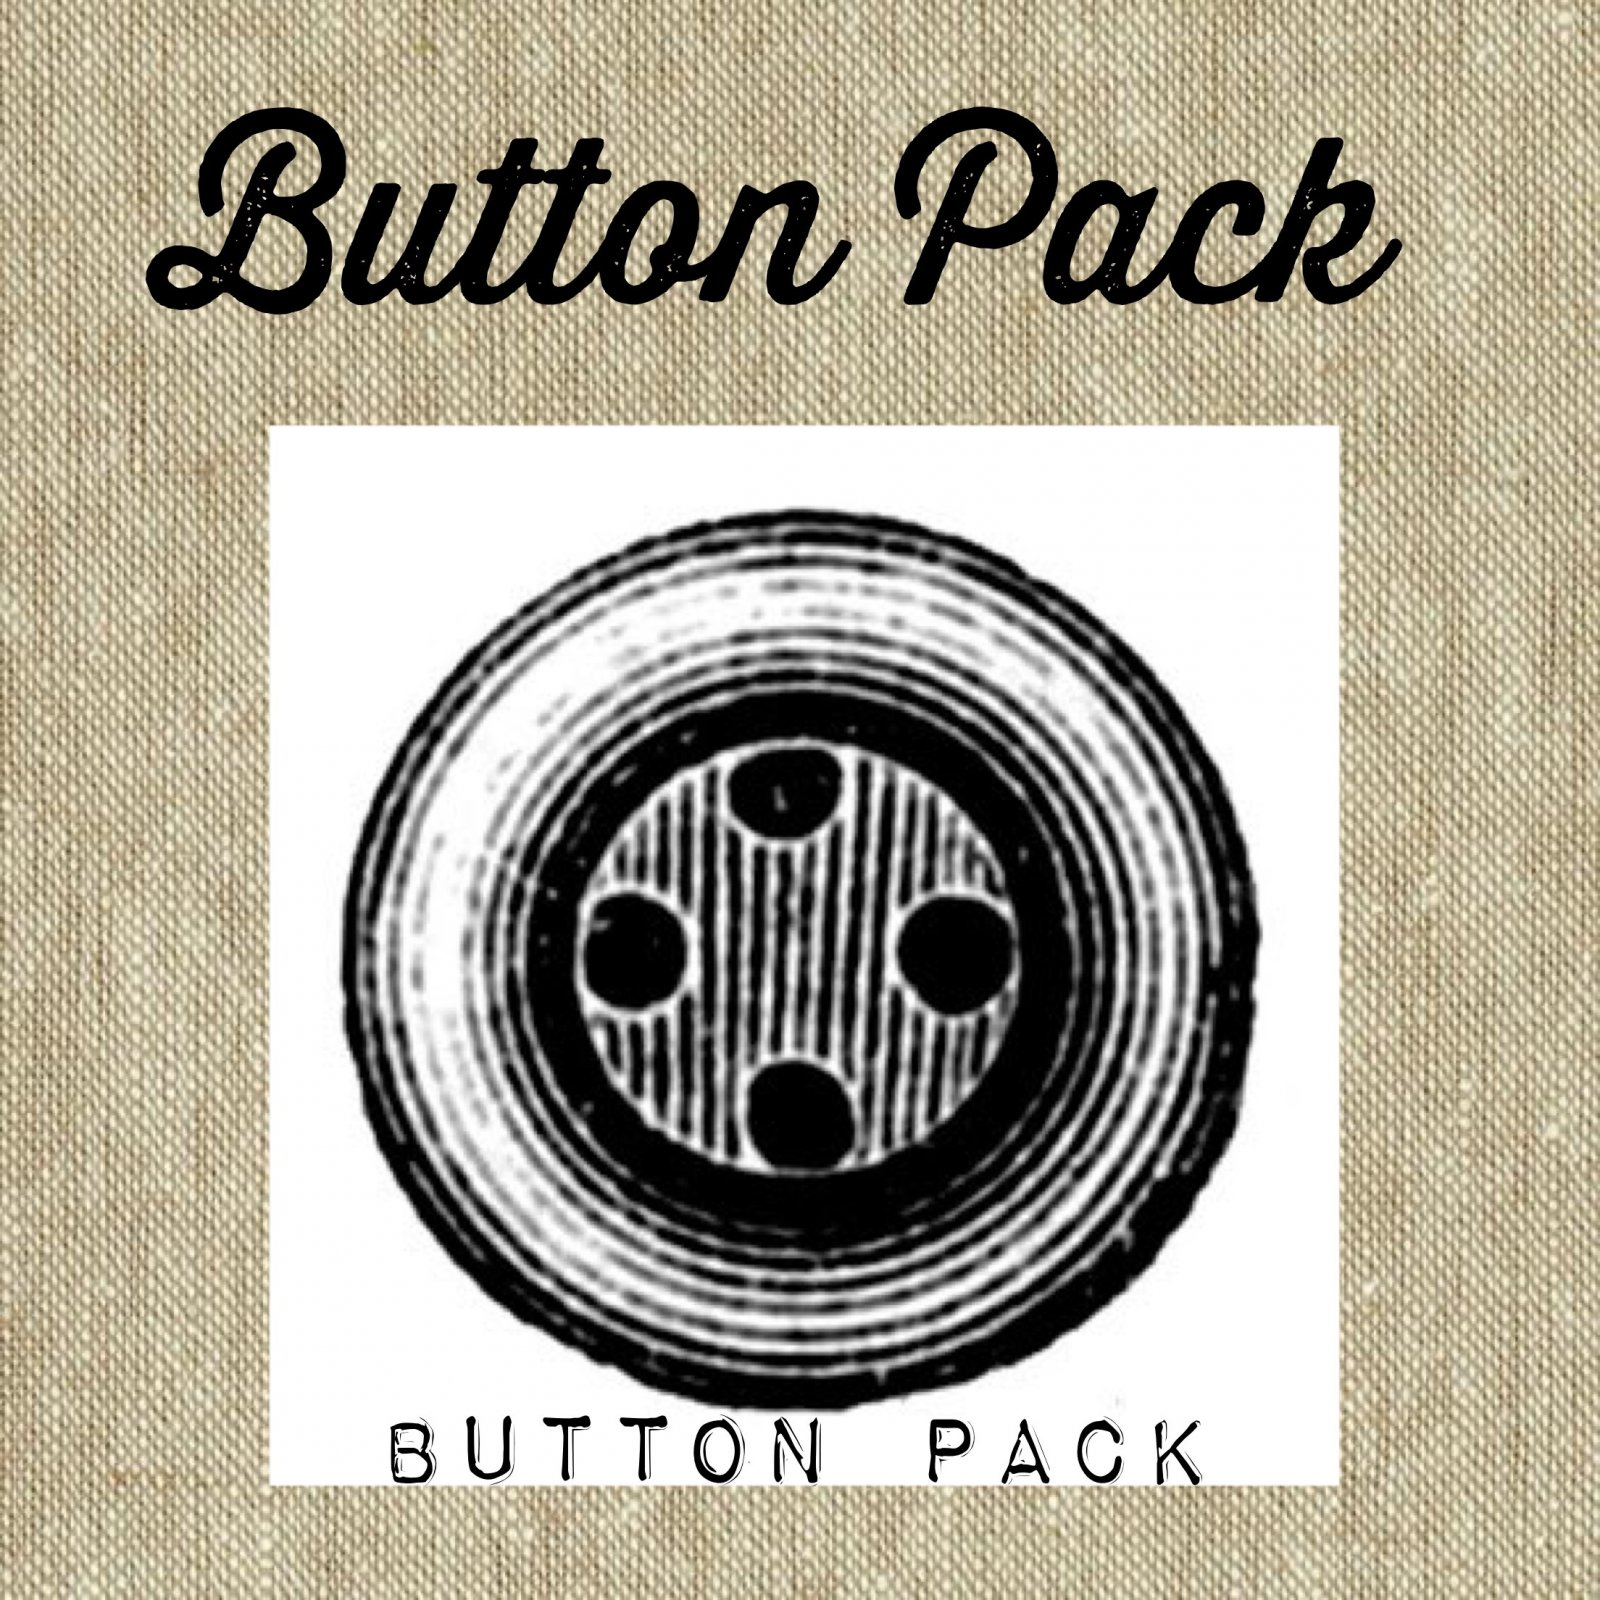 12 Days of Christmas Spools! * Button Pack